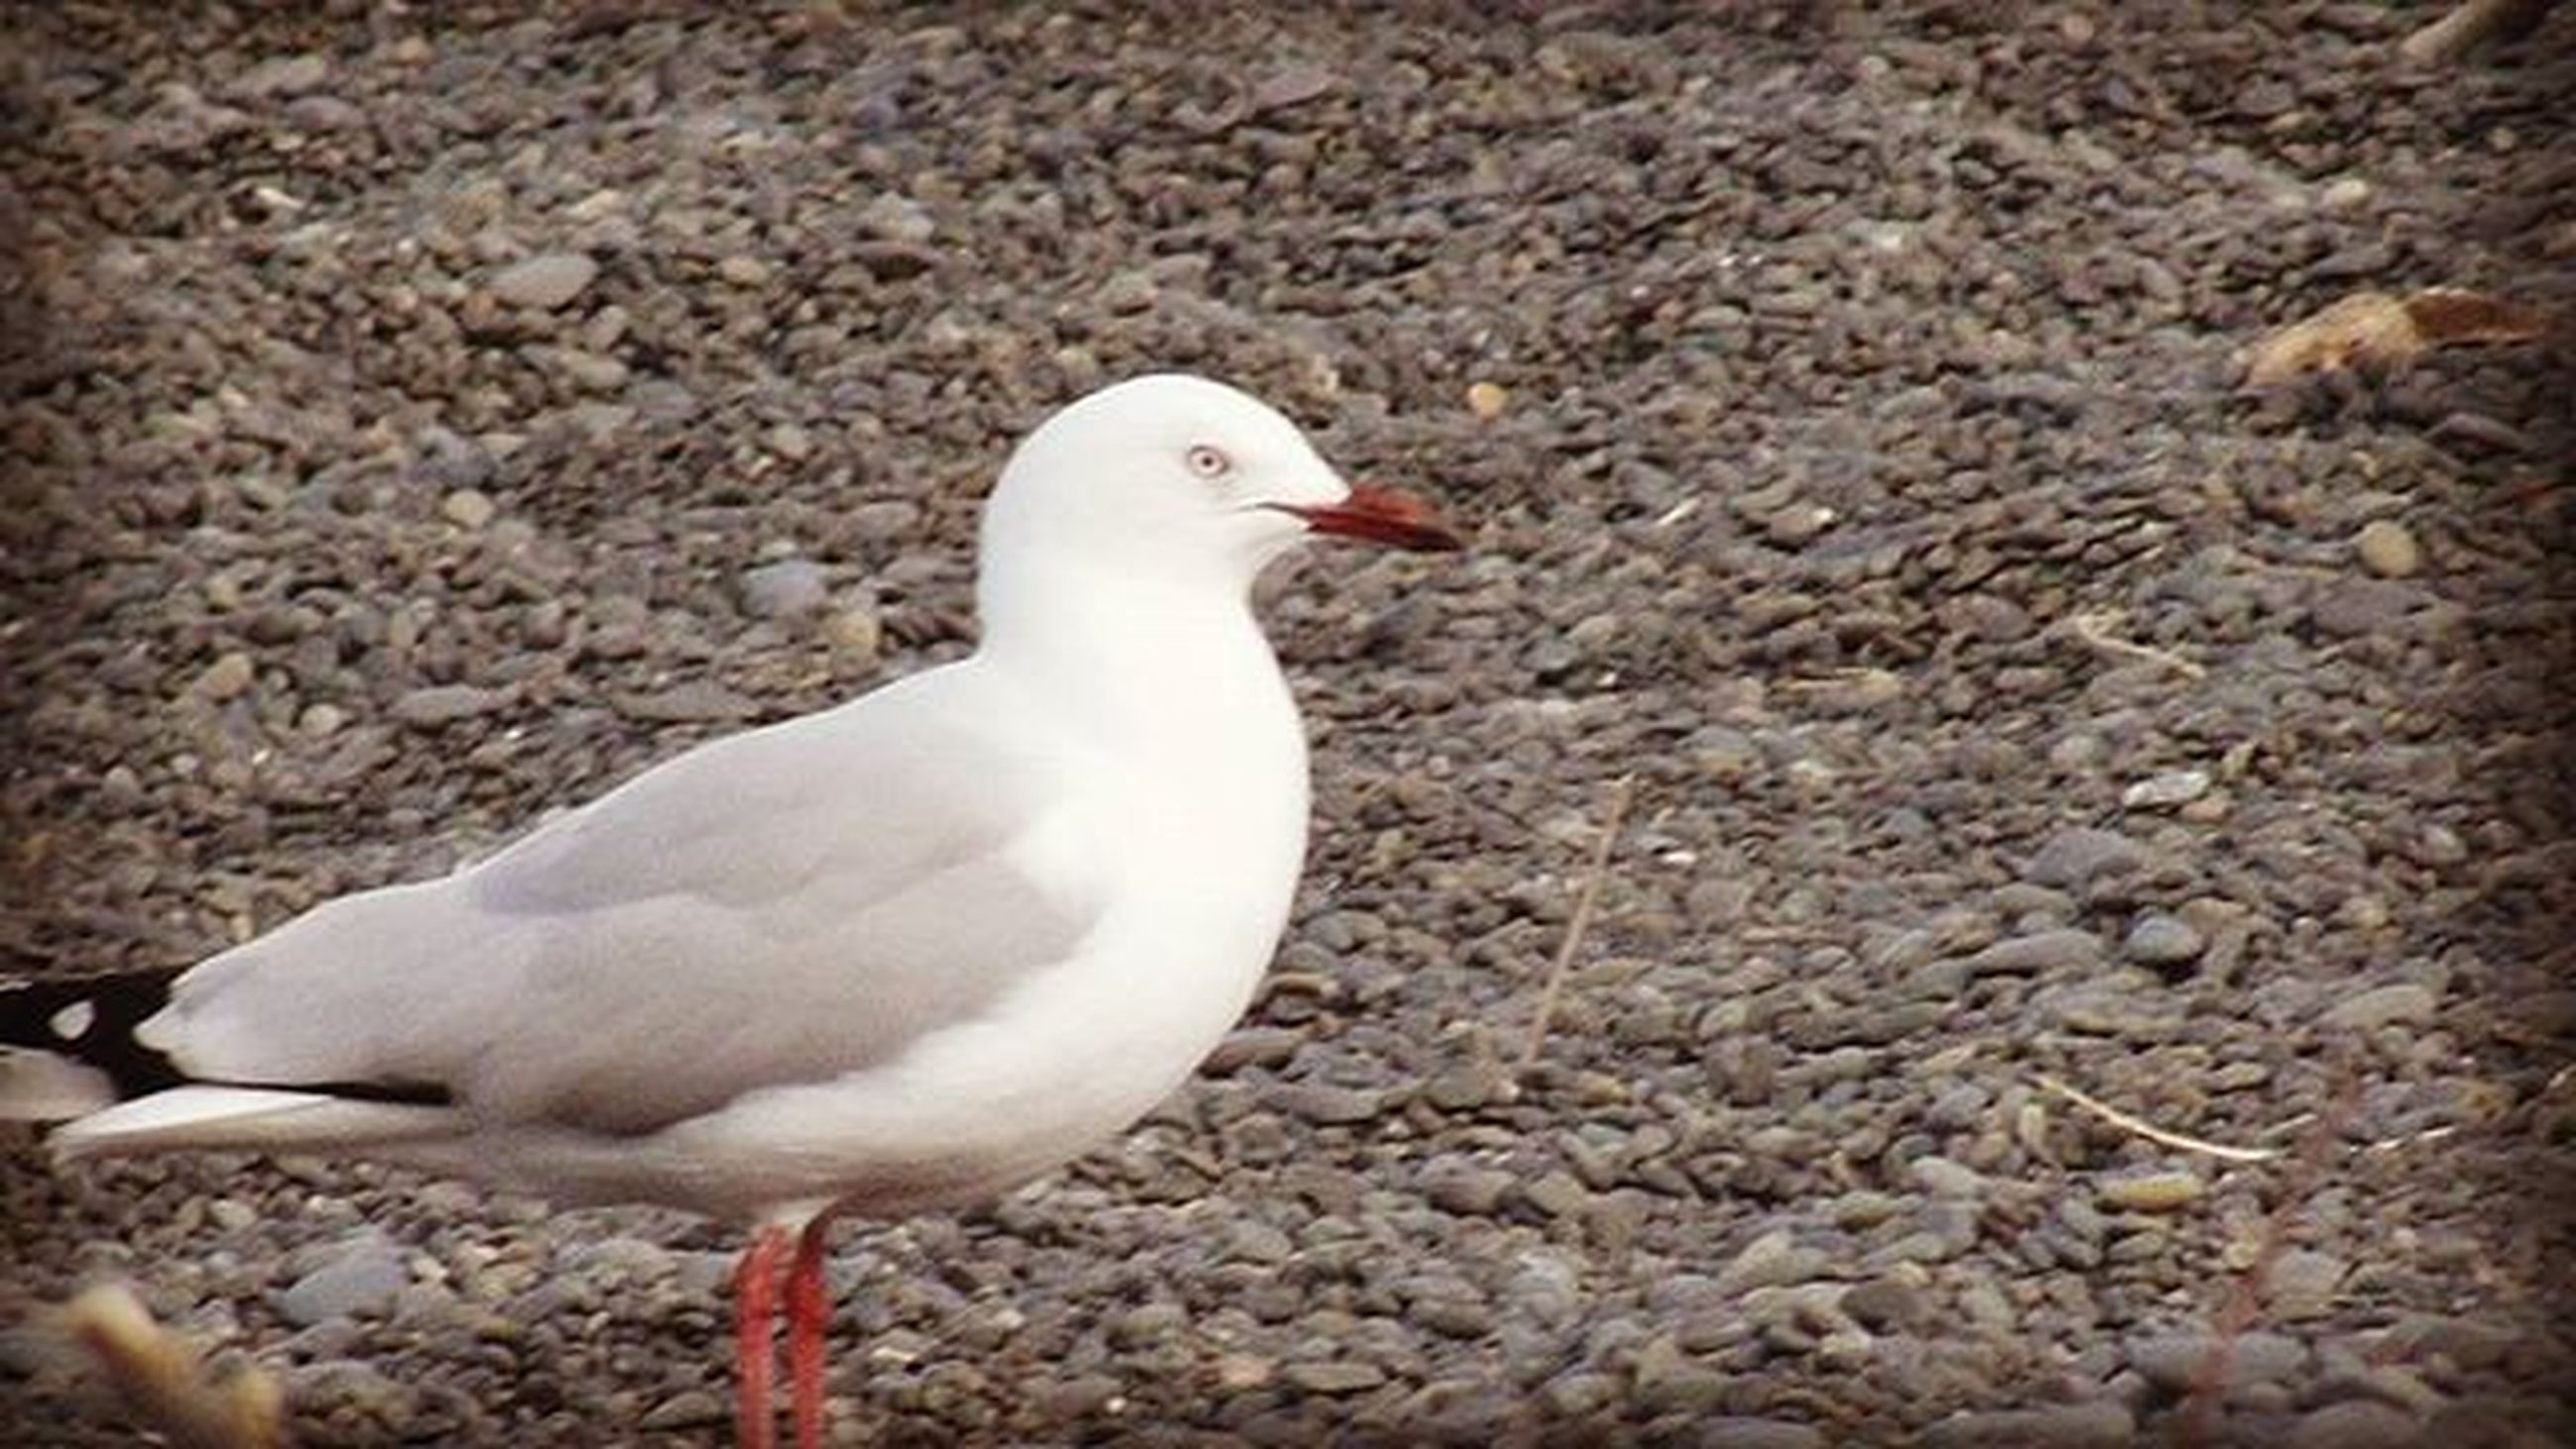 bird, animal themes, animals in the wild, wildlife, one animal, white color, beak, nature, outdoors, full length, high angle view, day, zoology, side view, no people, close-up, feather, seagull, white, beauty in nature